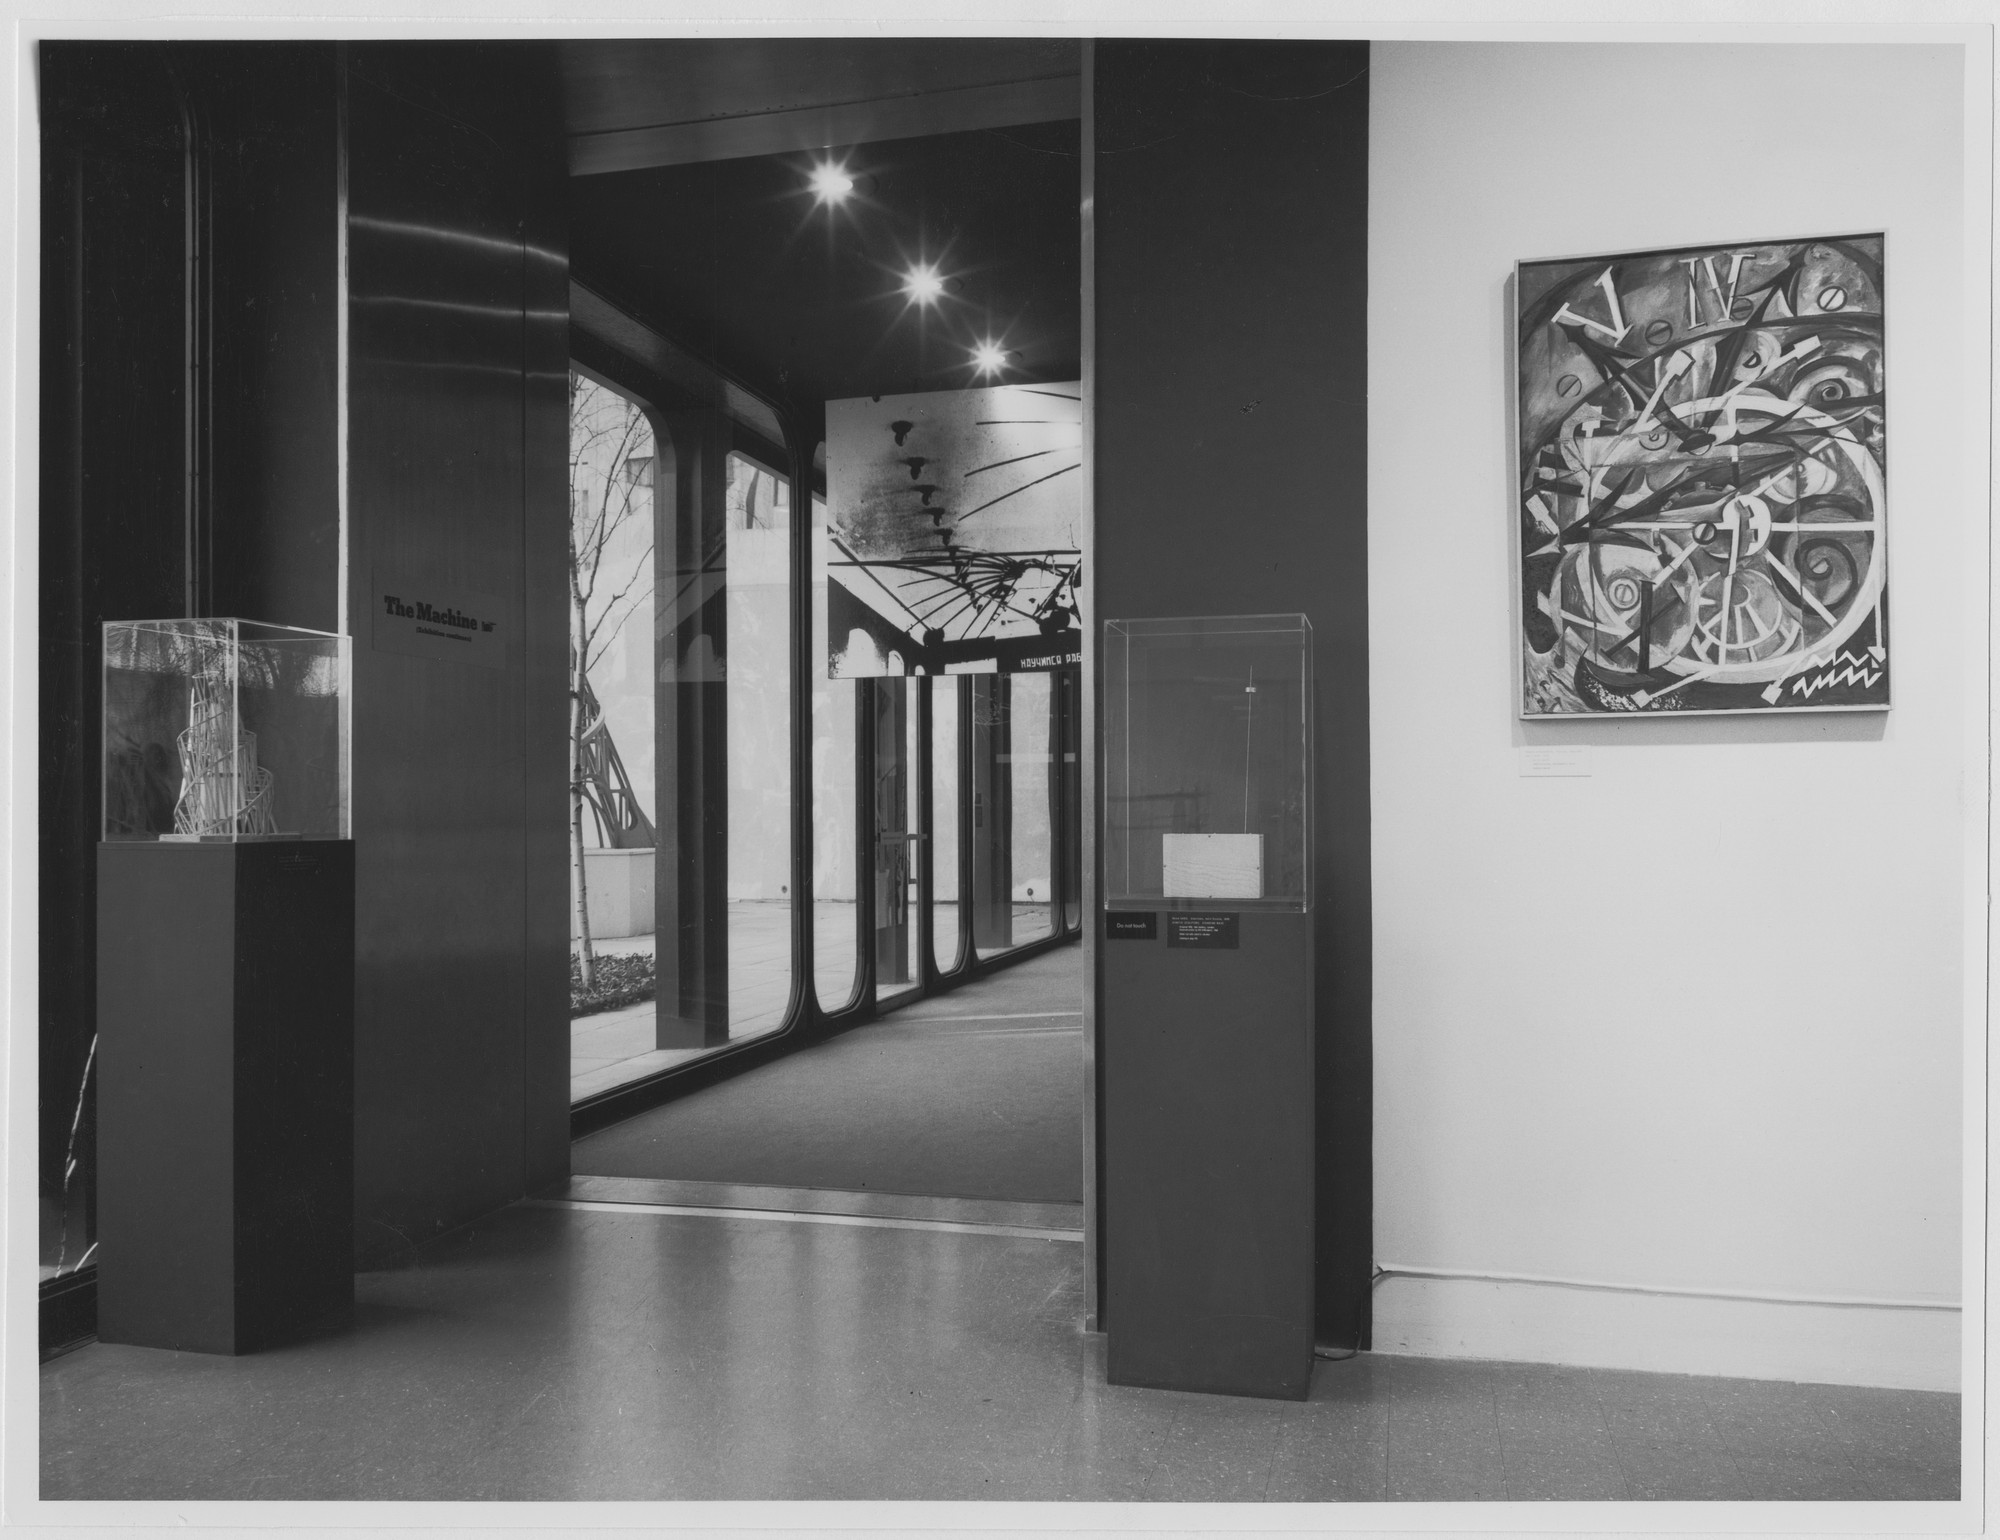 "Installation view of the exhibition, ""The Machine as Seen at the End of the Mechanical Age."" November 27, 1968–February 9, 1969. Photographic Archive. The Museum of Modern Art Archives, New York. IN877.1. Photograph by James Mathews."